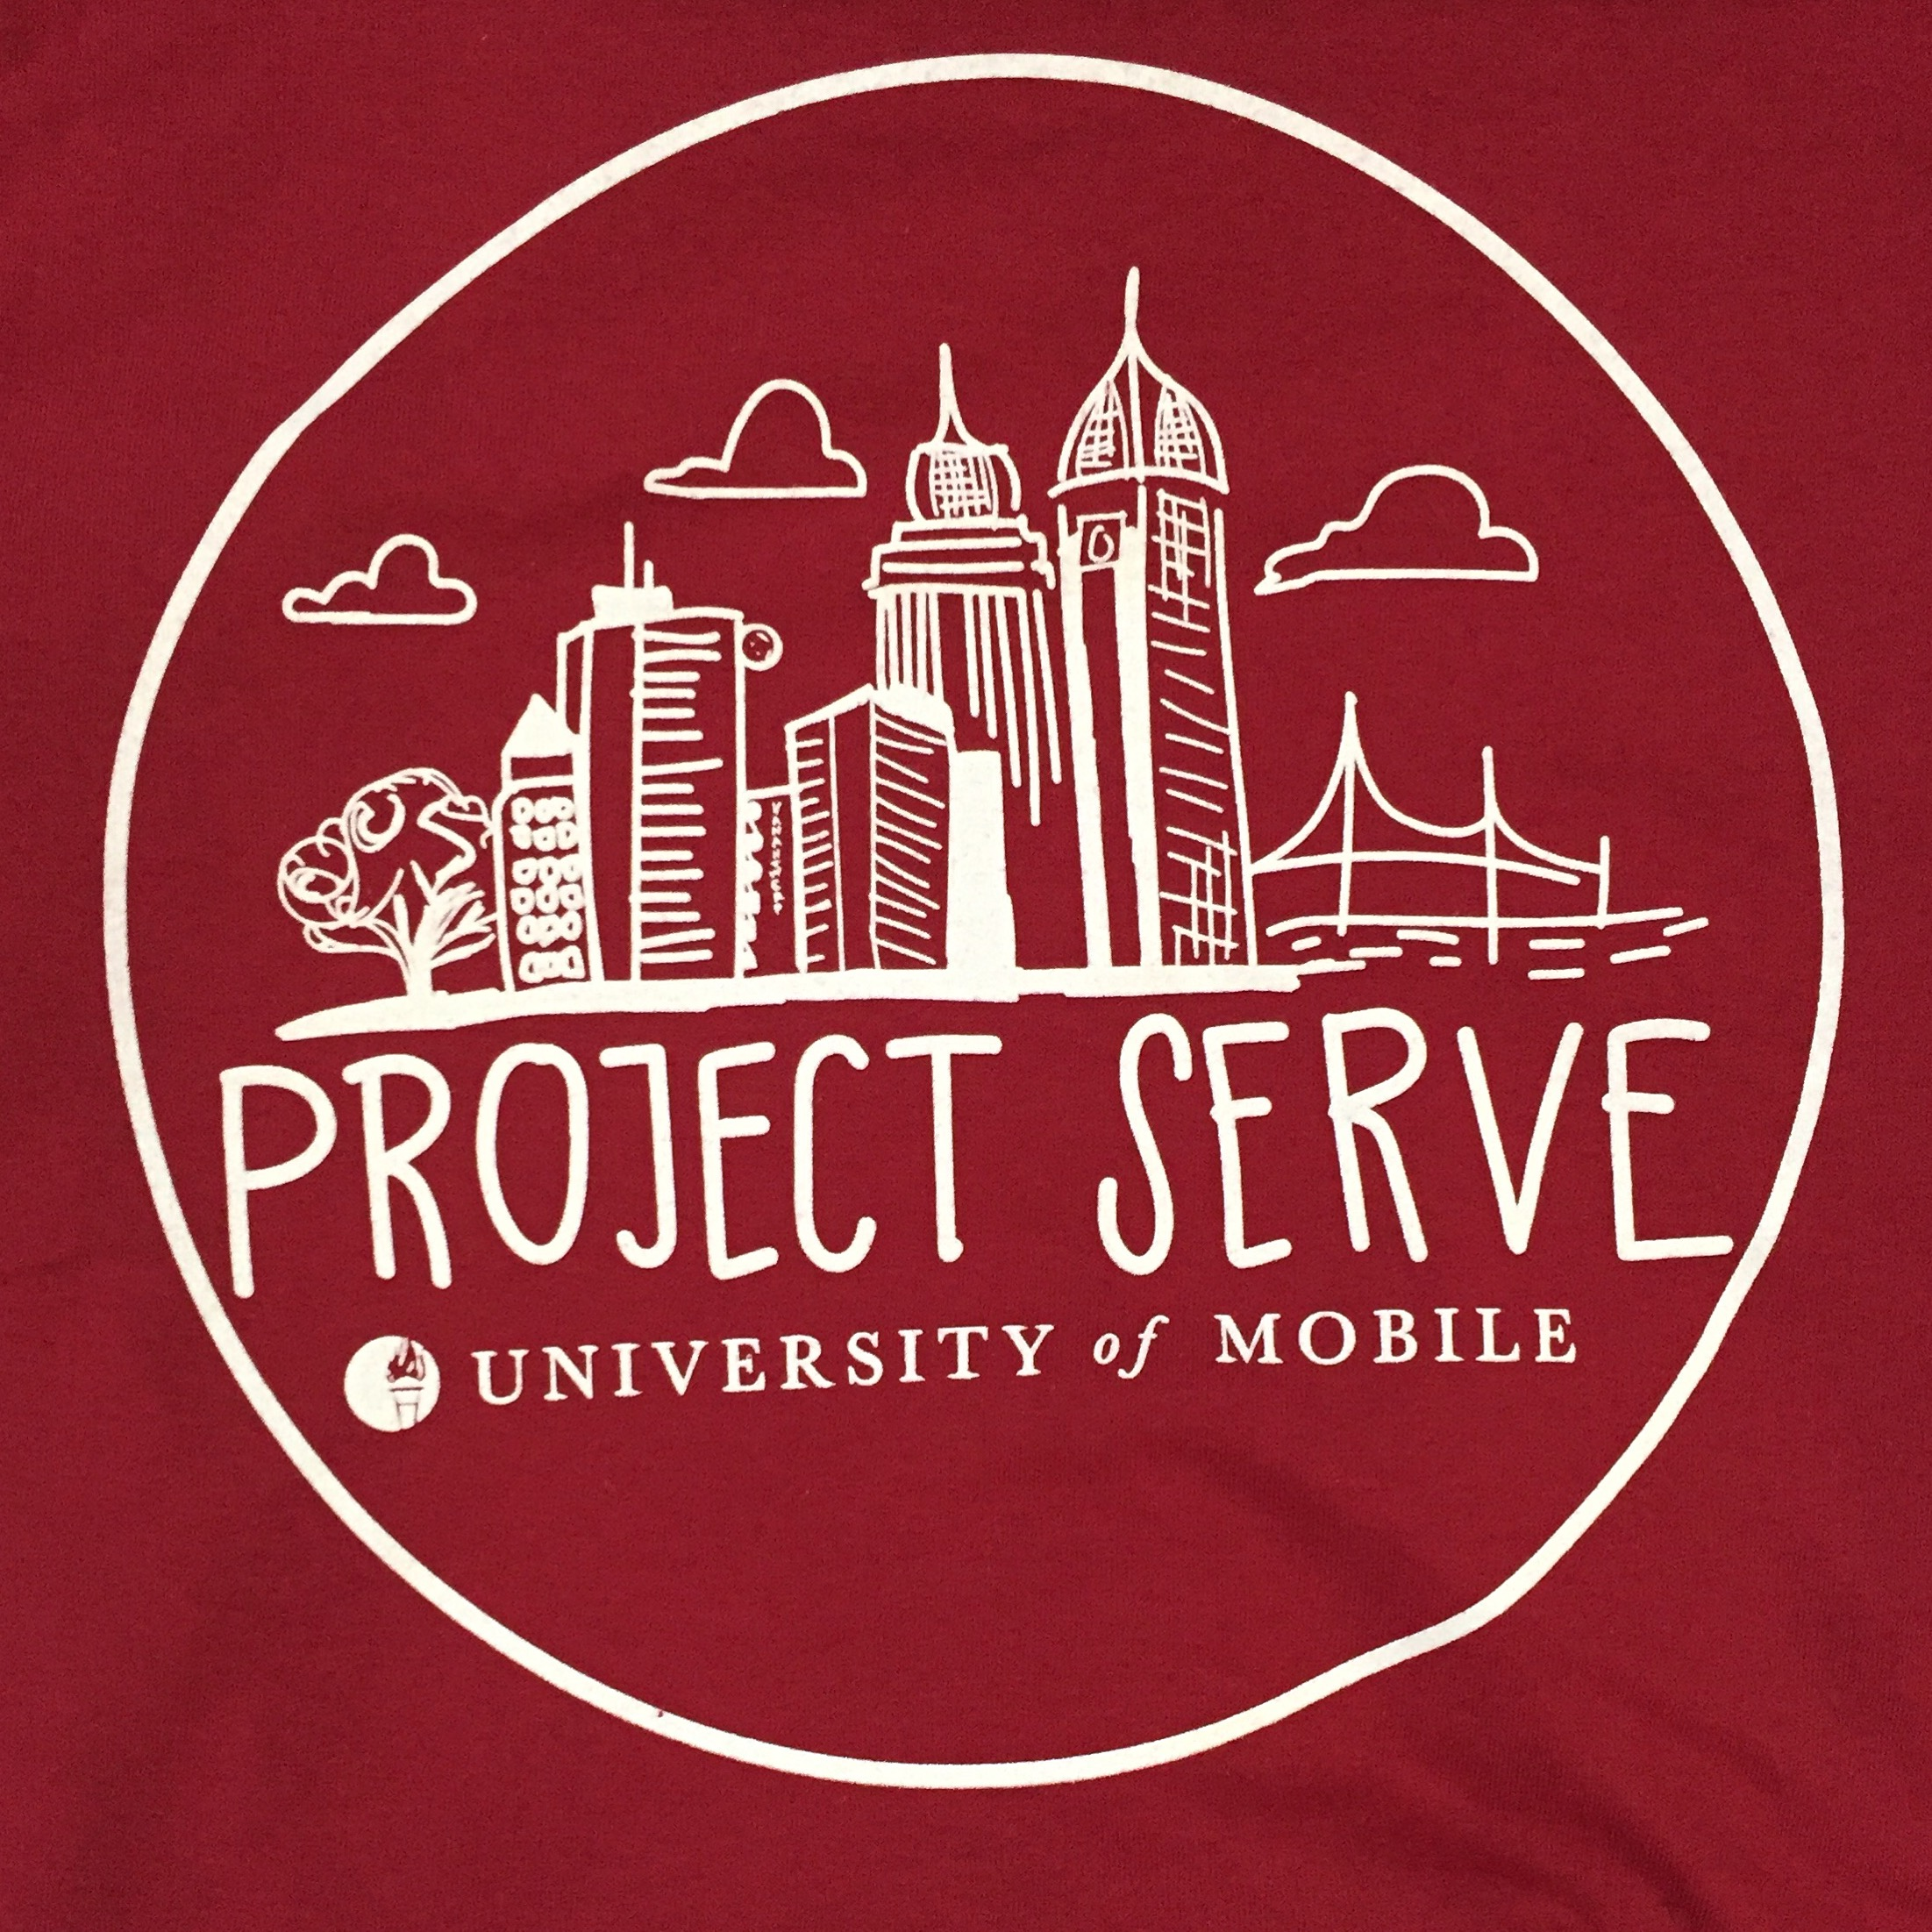 University of Mobile Project Serve